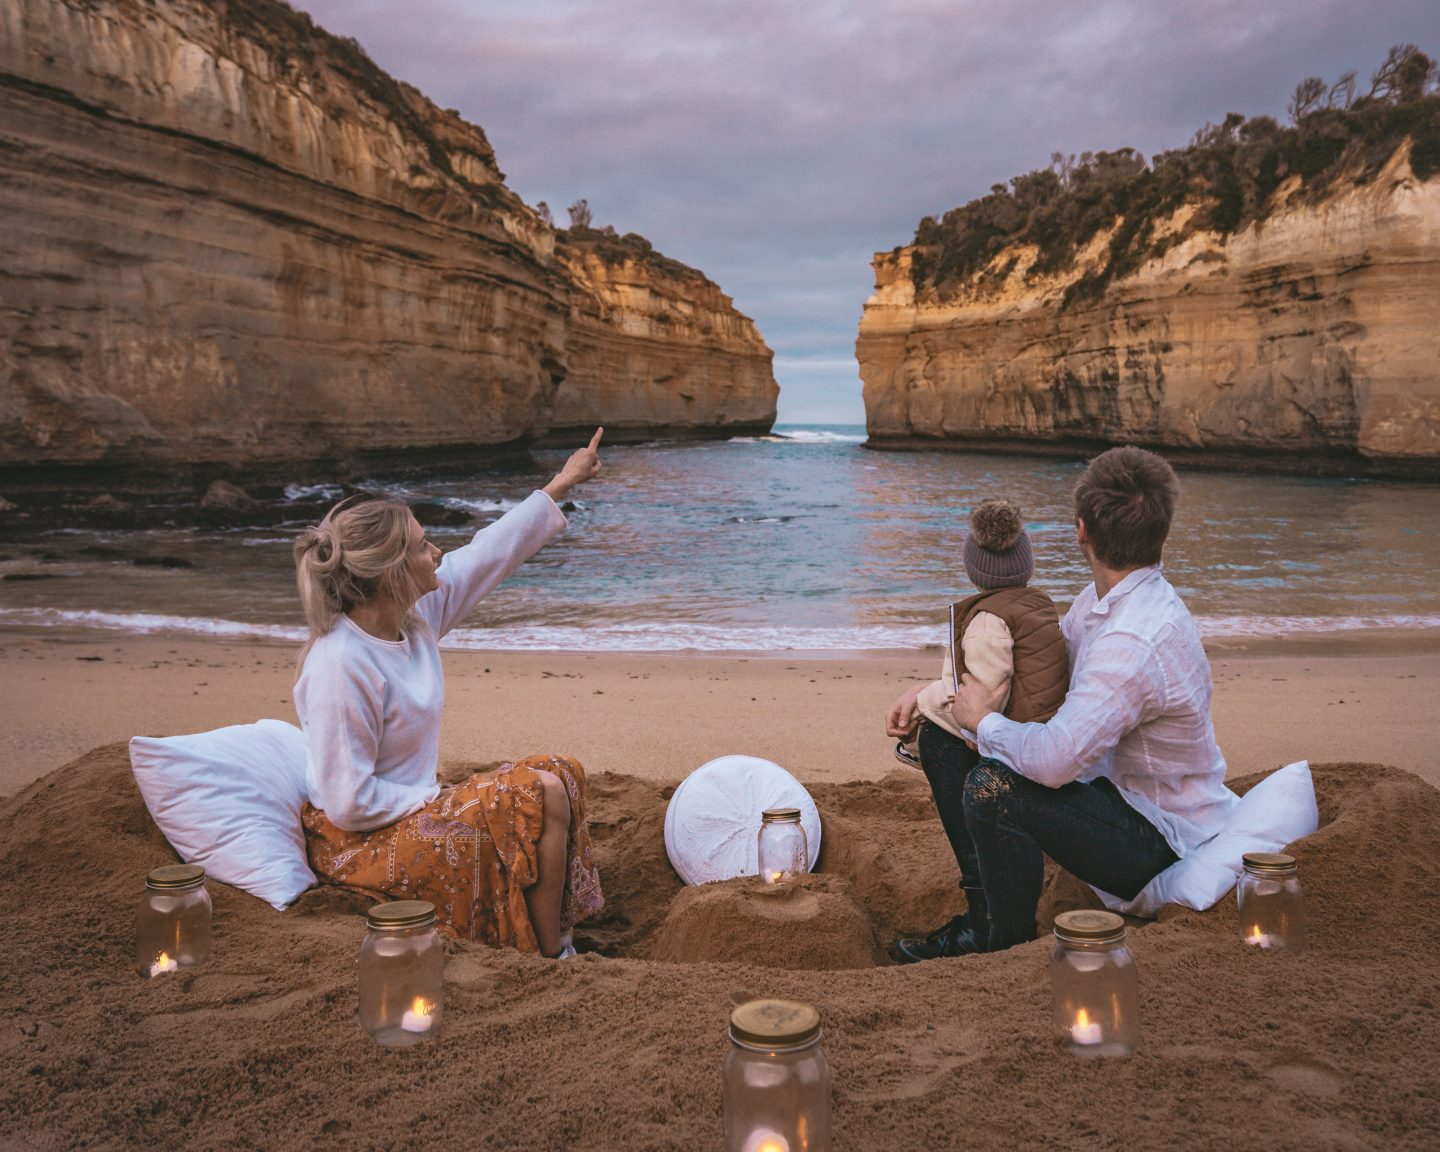 Most Instagrammable Spots on the Great Ocean Road - Loch Ard Gorge *@livelifeandroam